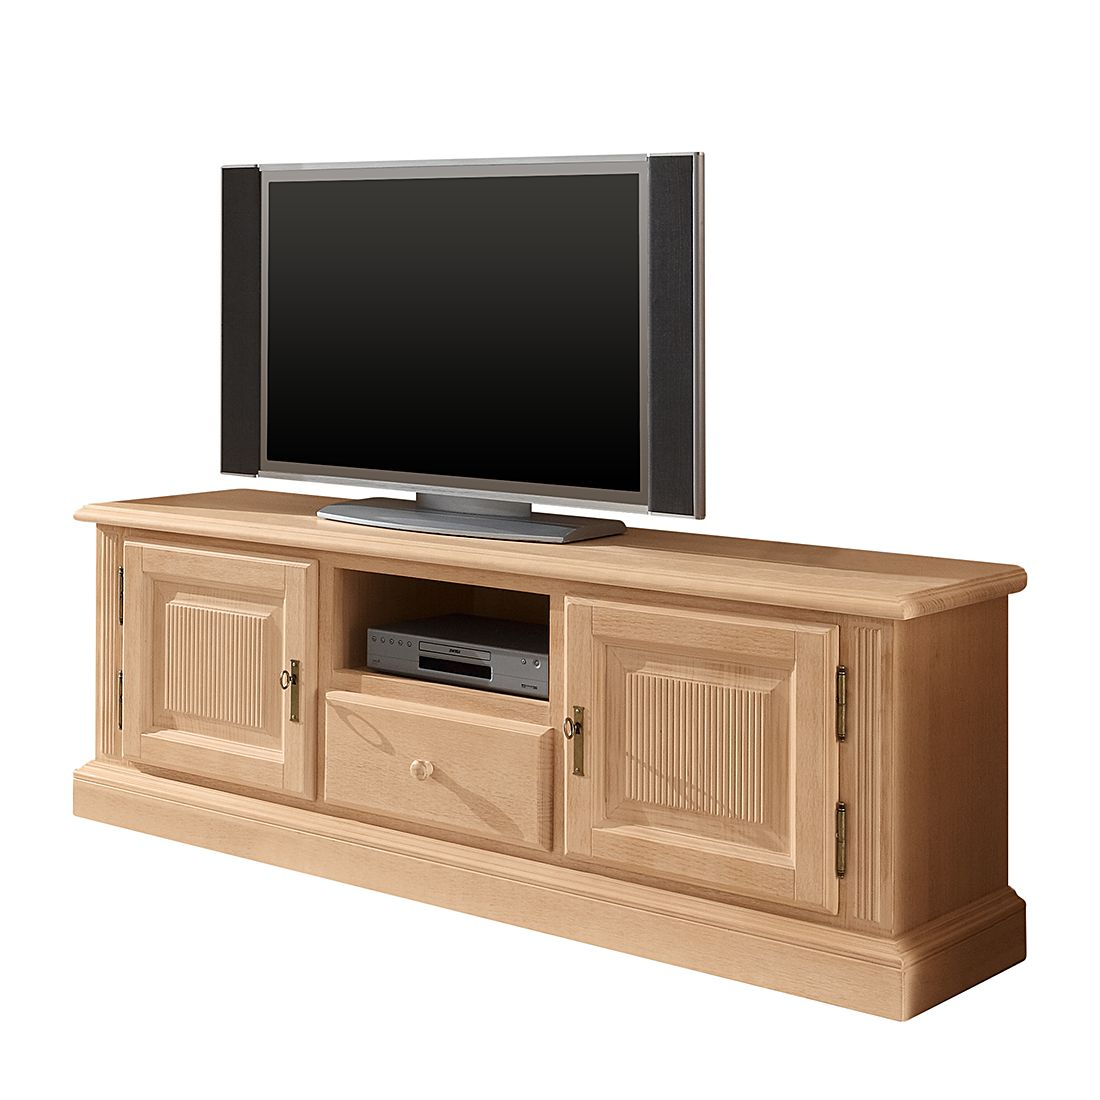 tv lowboard breddin i pinie massiv landhaus classic g nstig kaufen. Black Bedroom Furniture Sets. Home Design Ideas